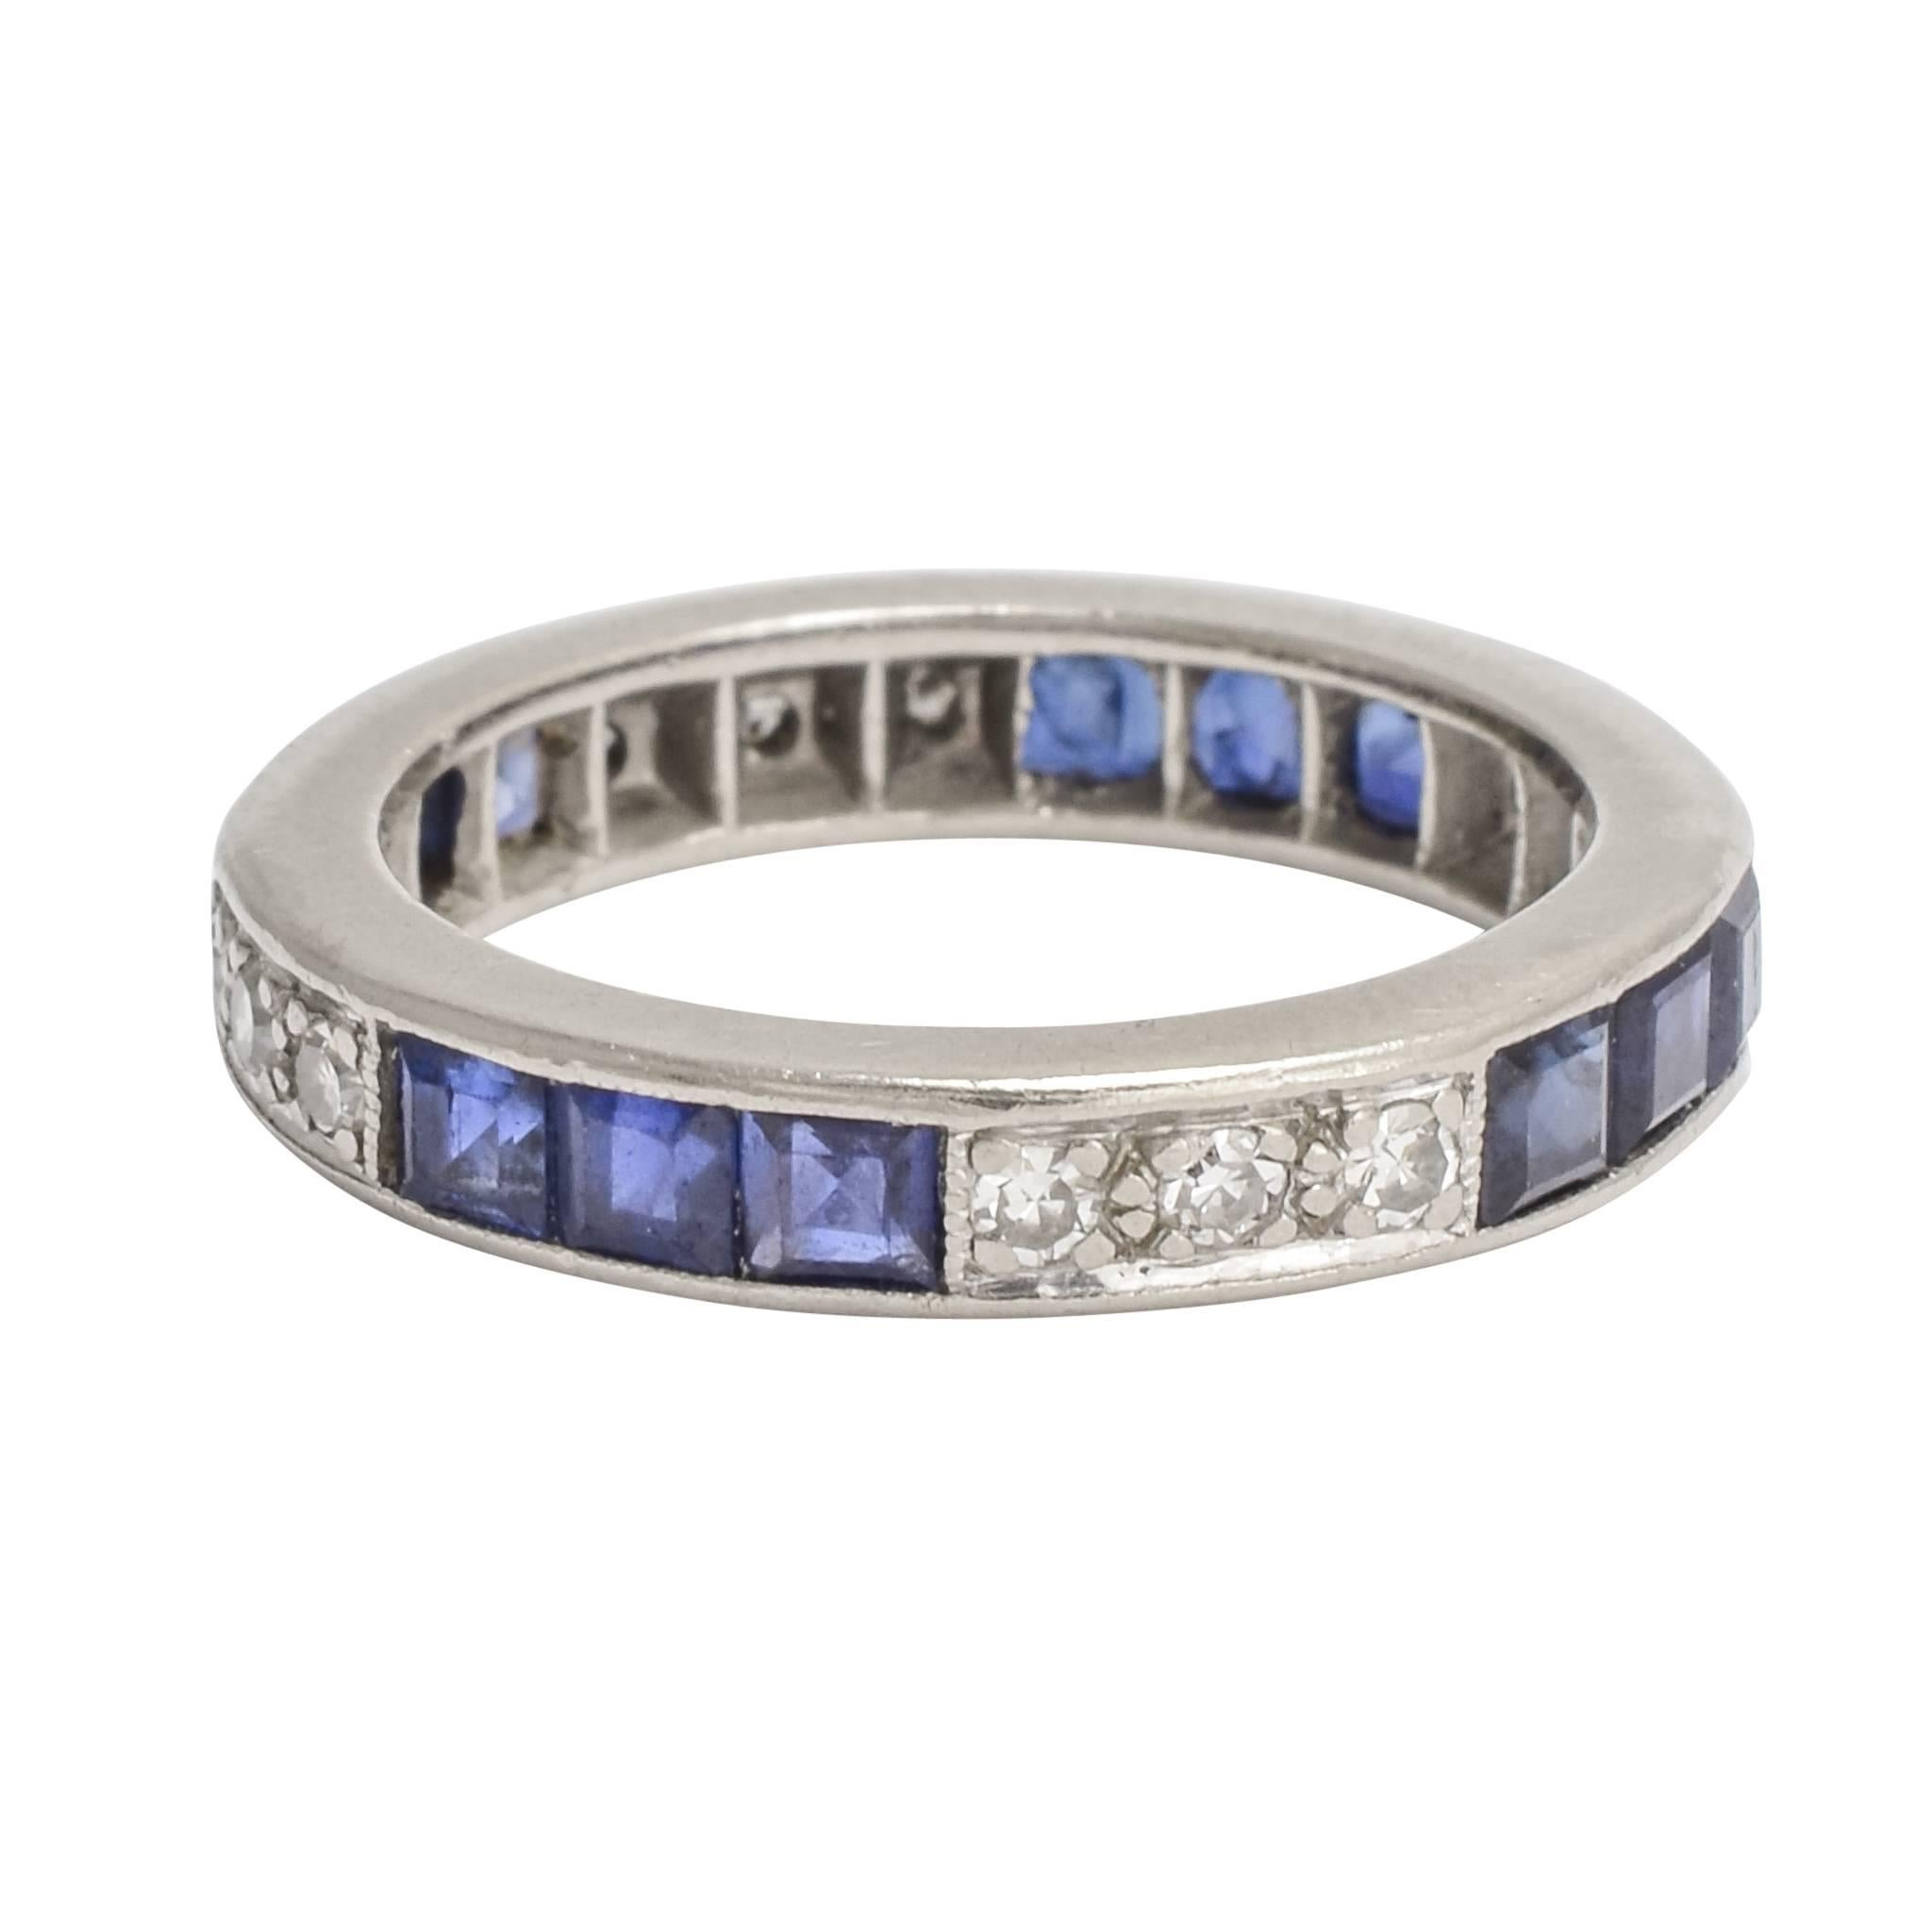 shop eternity sapphire umba brooks faceted jewelry above august lola blue bands band designers